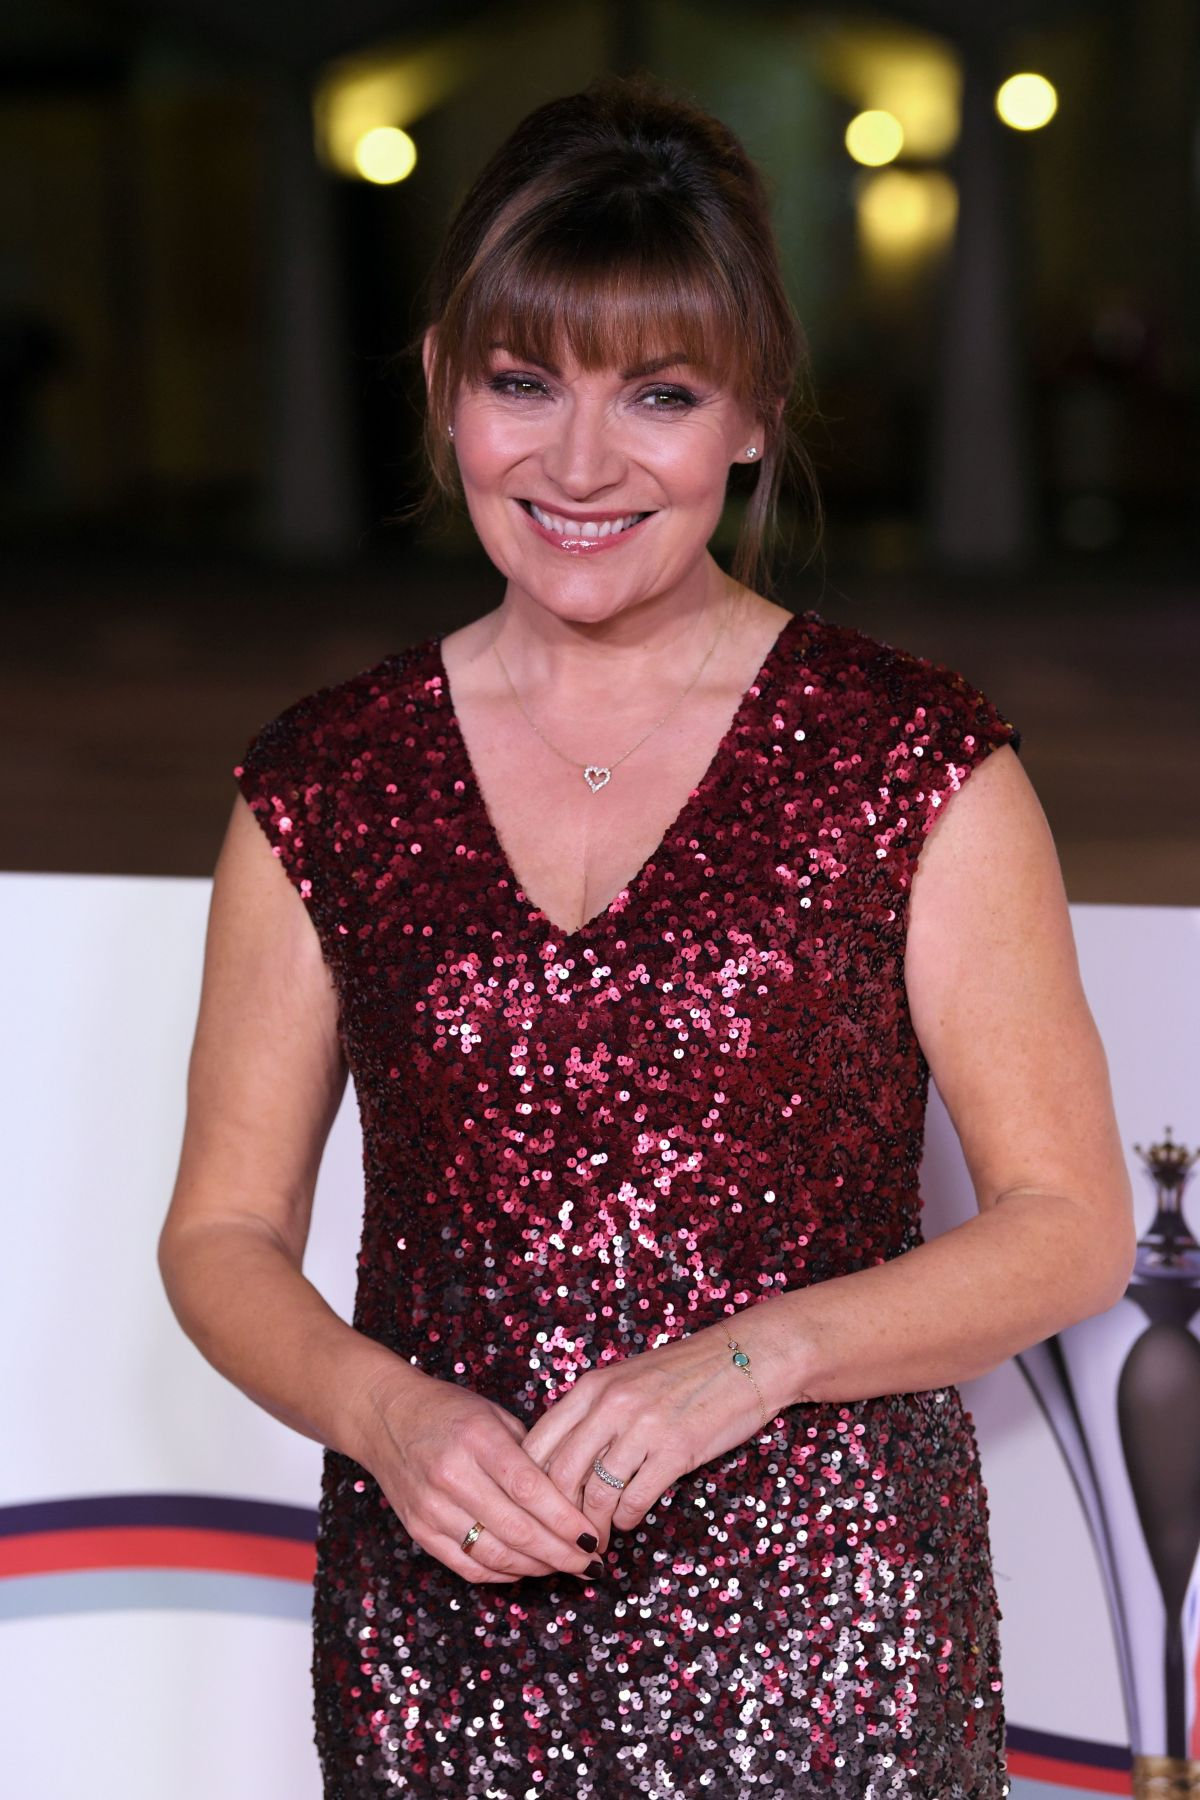 LORRAINE KELLY at The Sun Military Awards in London 12/14/2016